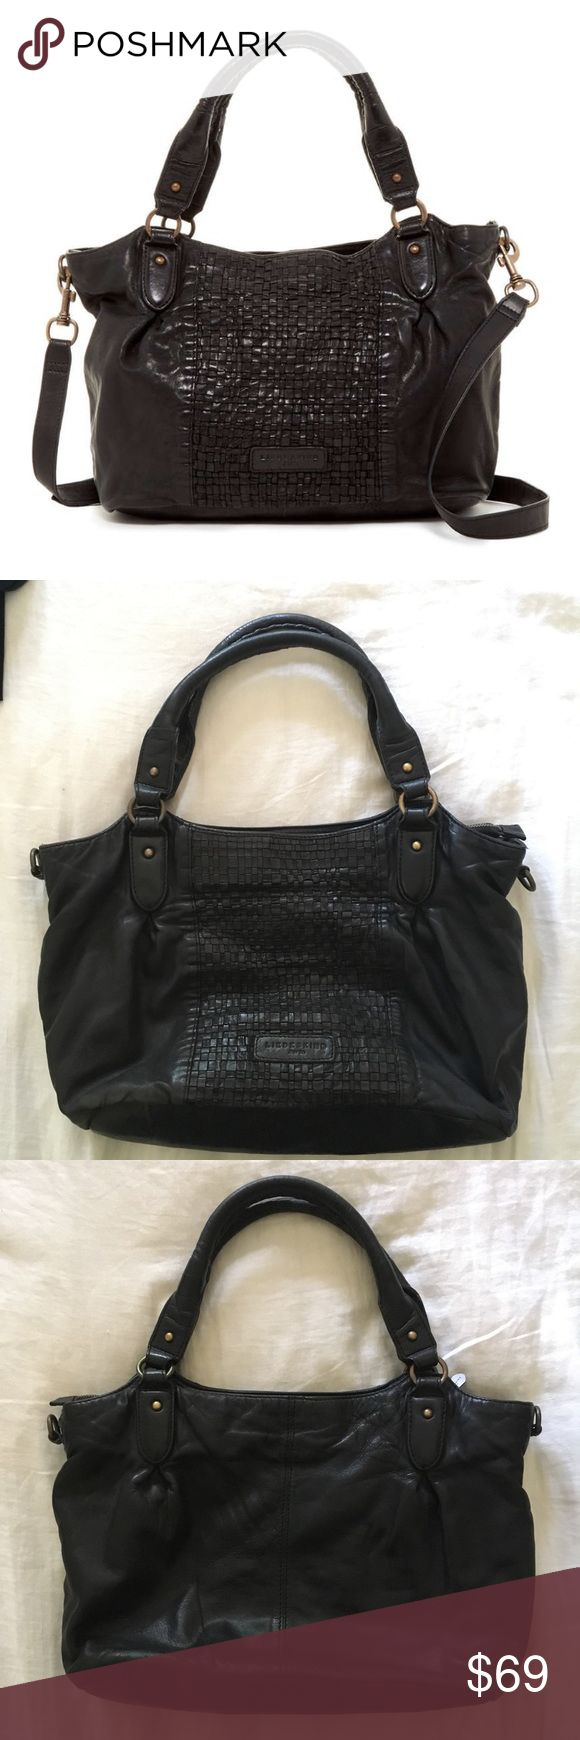 Liebskind purse, EUC Liebeskind Dominique purse, excellent used condition. No damages at all. Used only a few times. Bought at Nordstrom for $139. 100% leather. Prices are negotiable, send offers! Liebeskind Bags Shoulder Bags